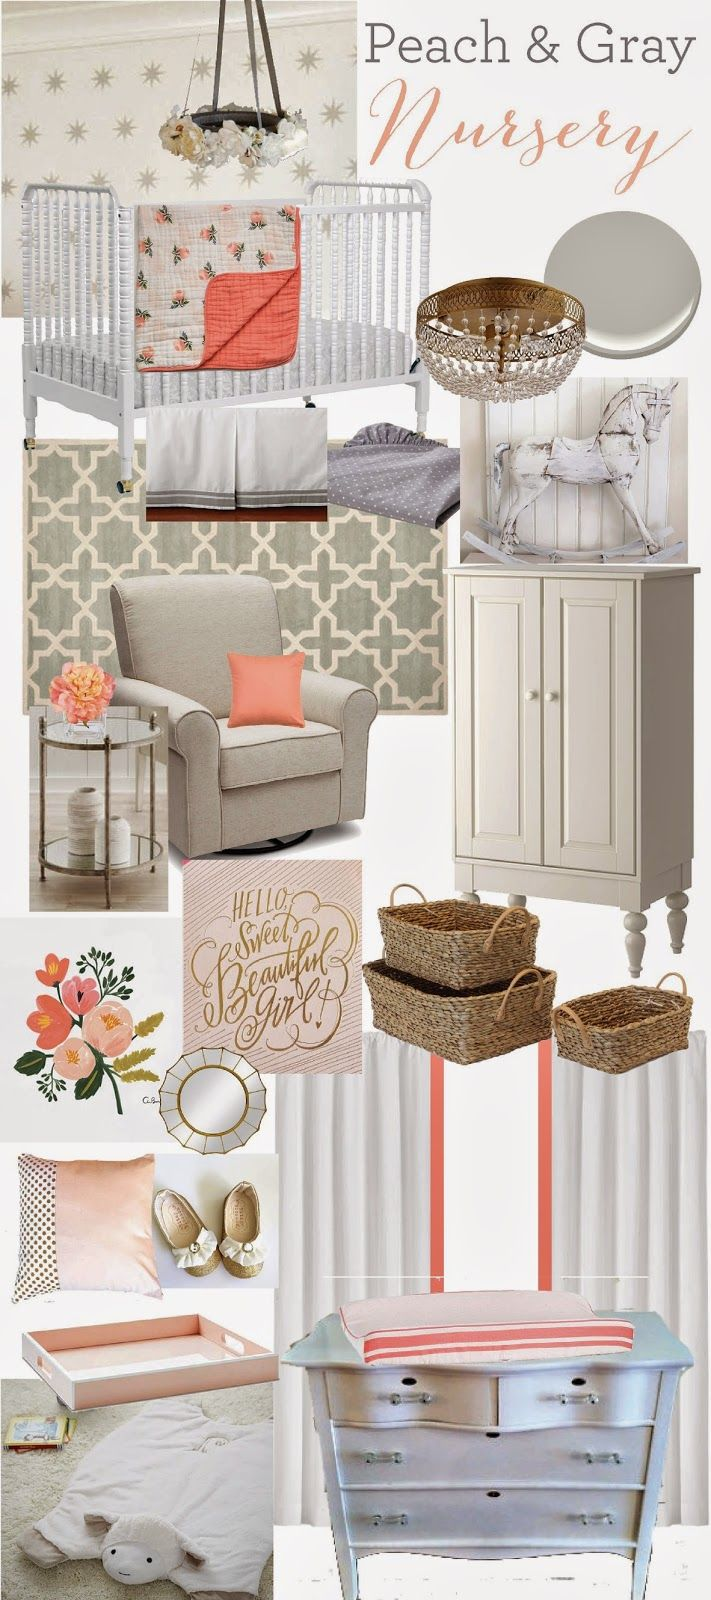 Peach Colored Bedrooms 17 Best Ideas About Peach Colored Rooms On Pinterest Peach Color